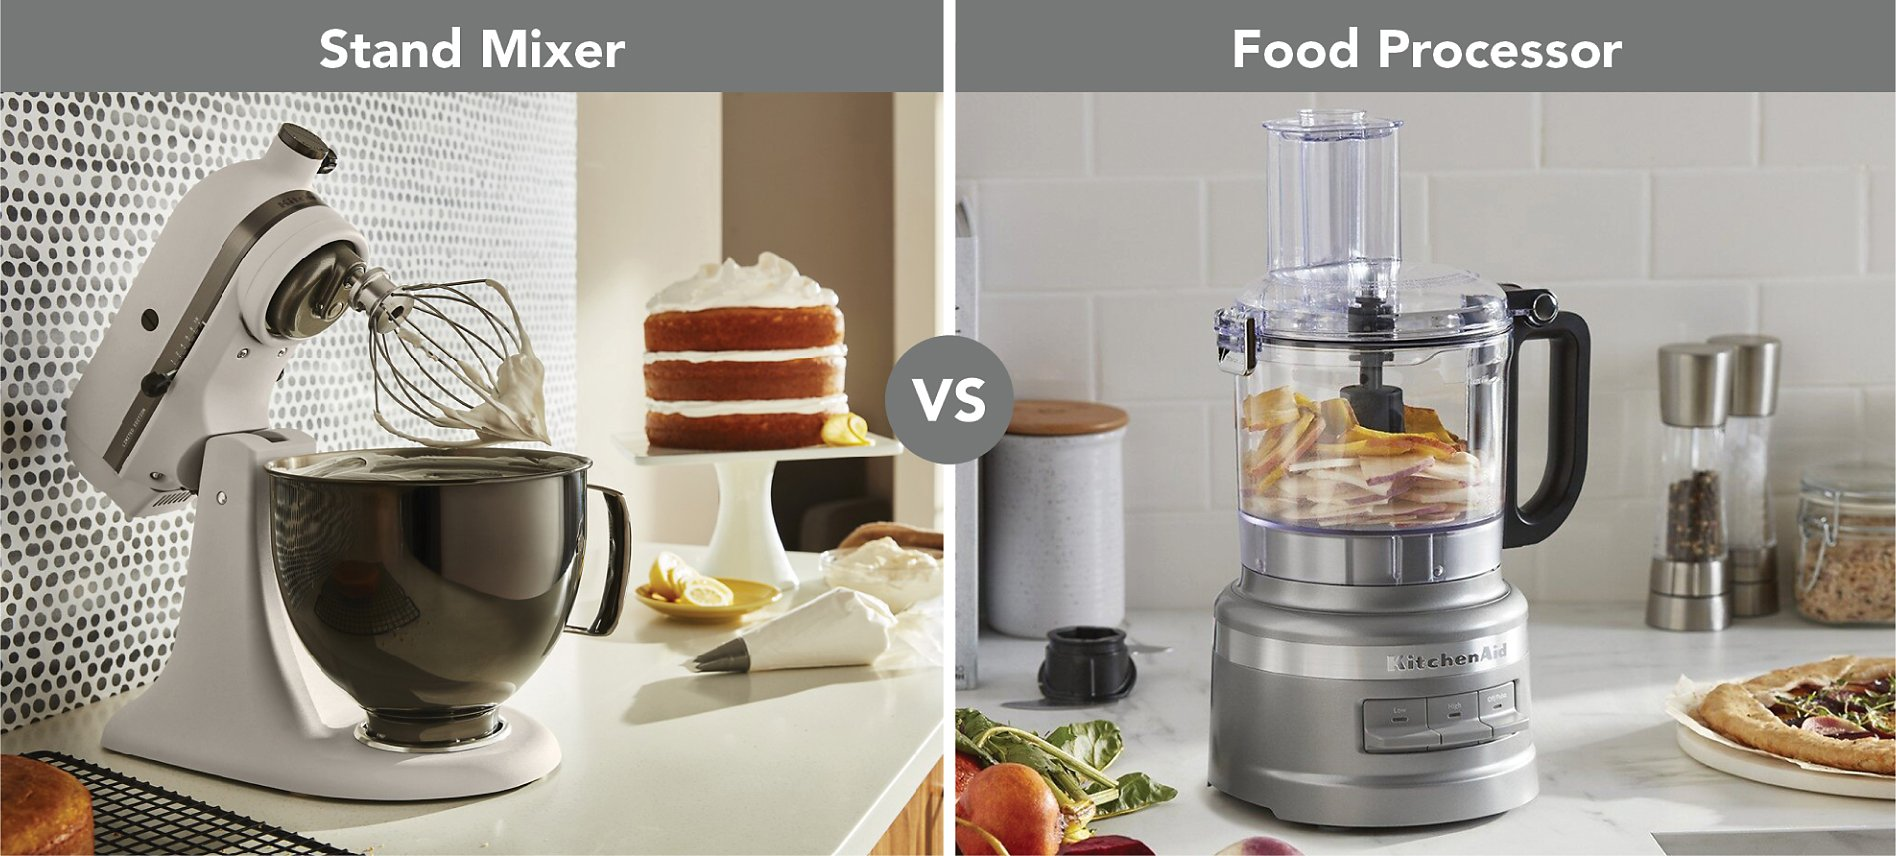 Stand mixer and food processor comparison picture